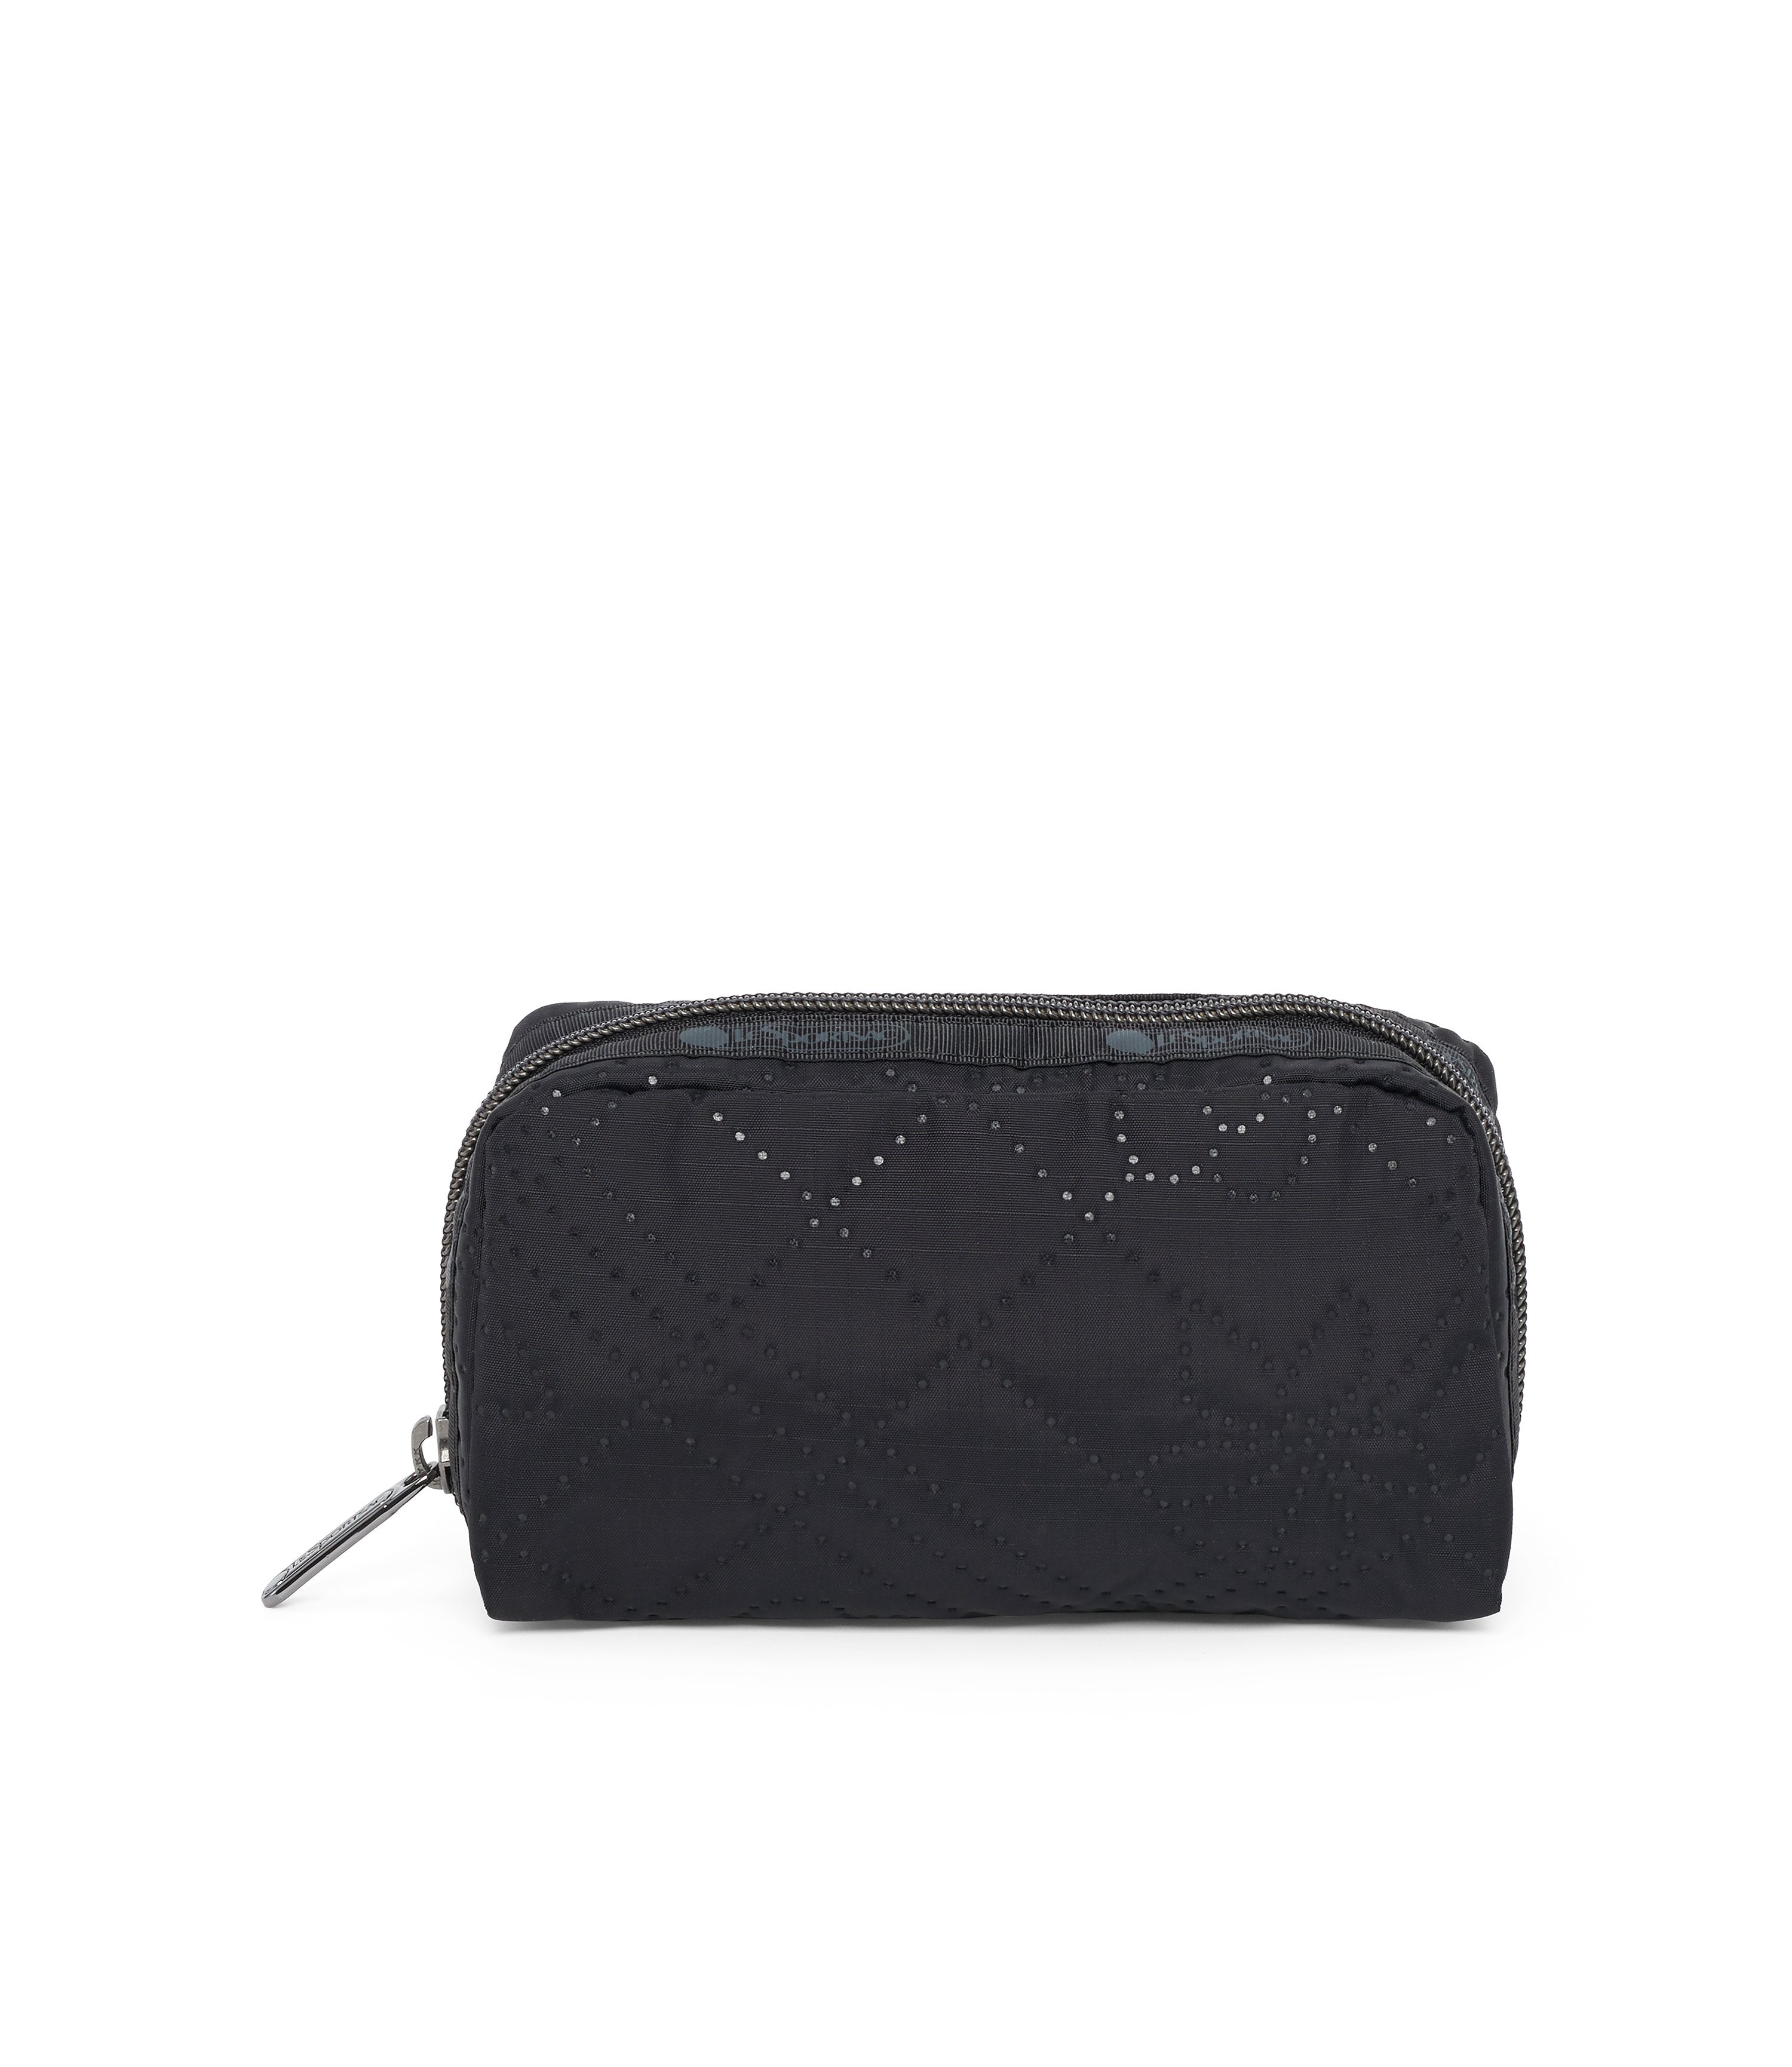 Rectangular Cosmetic, Accessories, Makeup and Cosmetic Bags, LeSportsac, Fleur De Check Black Debossed